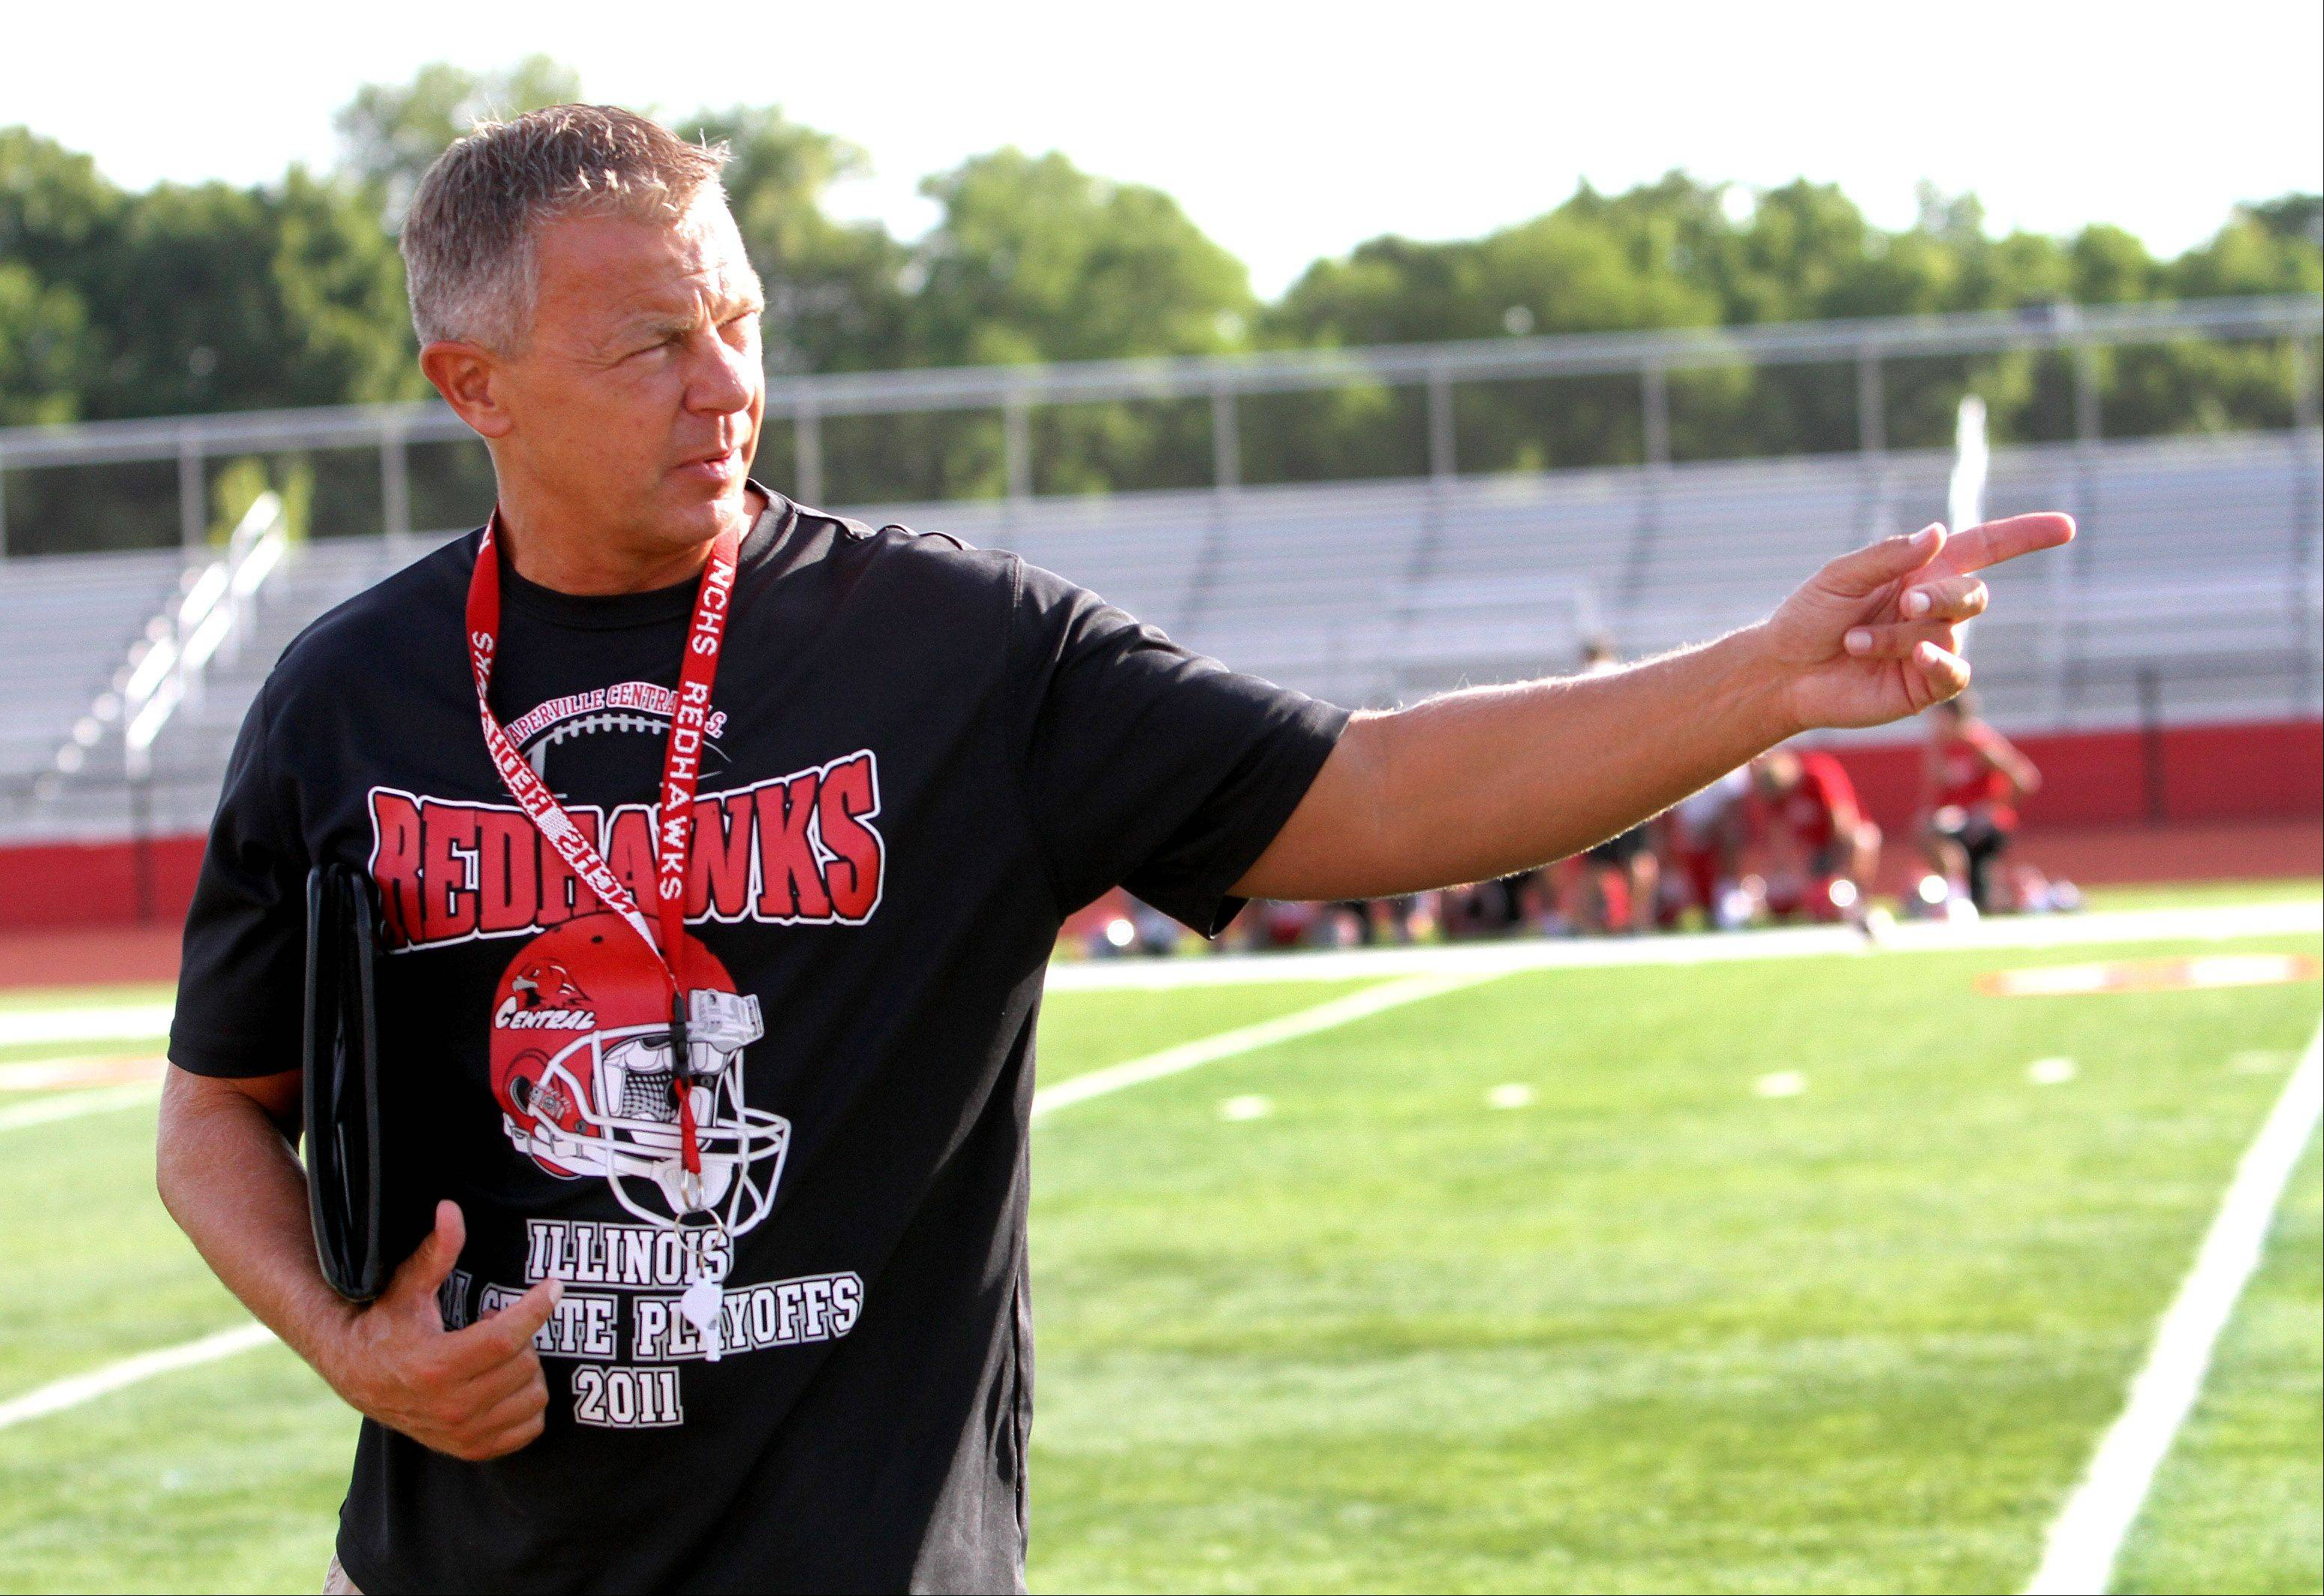 Coach Mike Stine watches a play at Naperville Central High School on Wednesday.